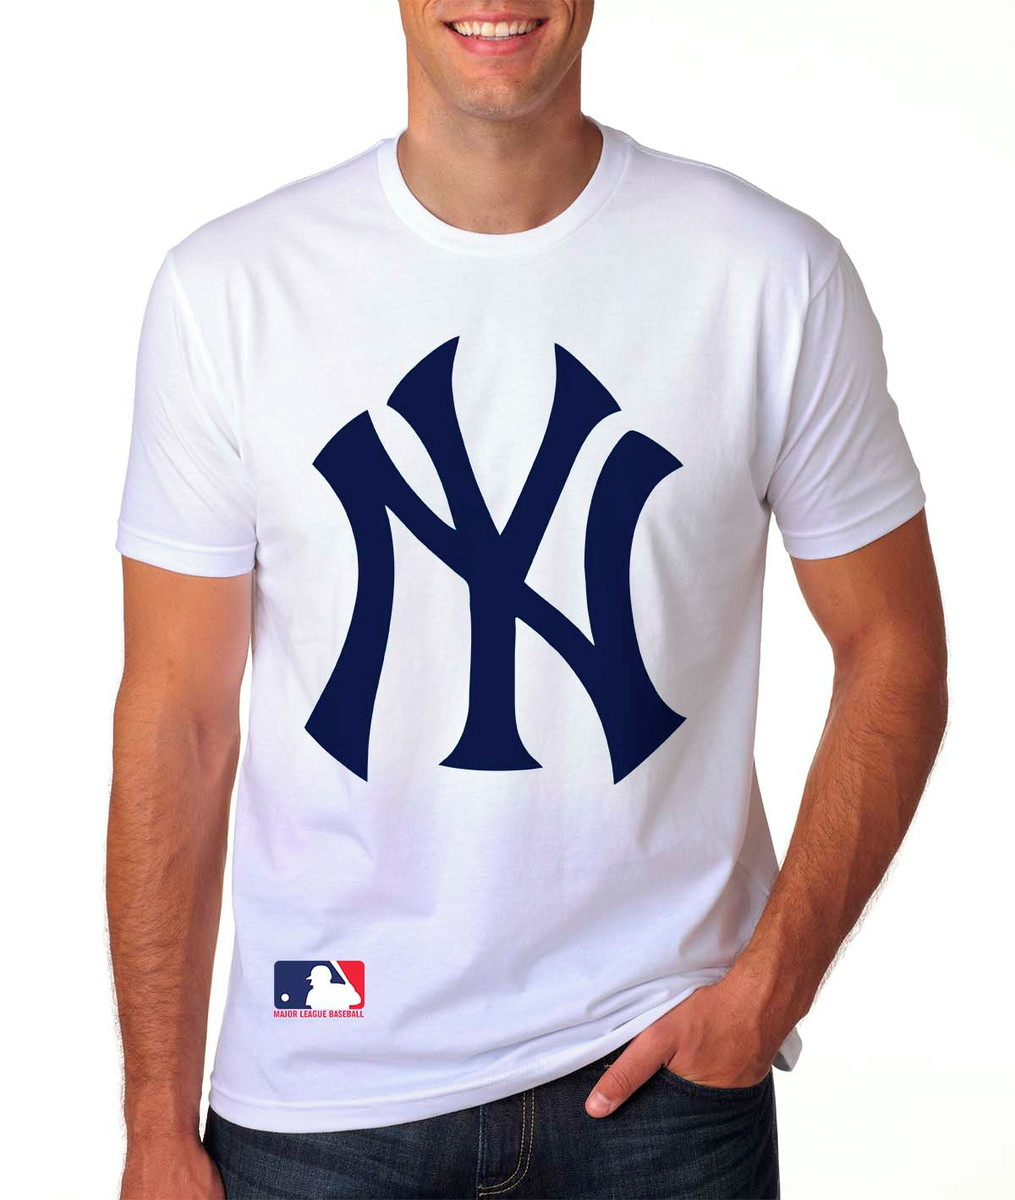 df9a97eb092b9 Camiseta New York Yankees MLB - A3 no Elo7